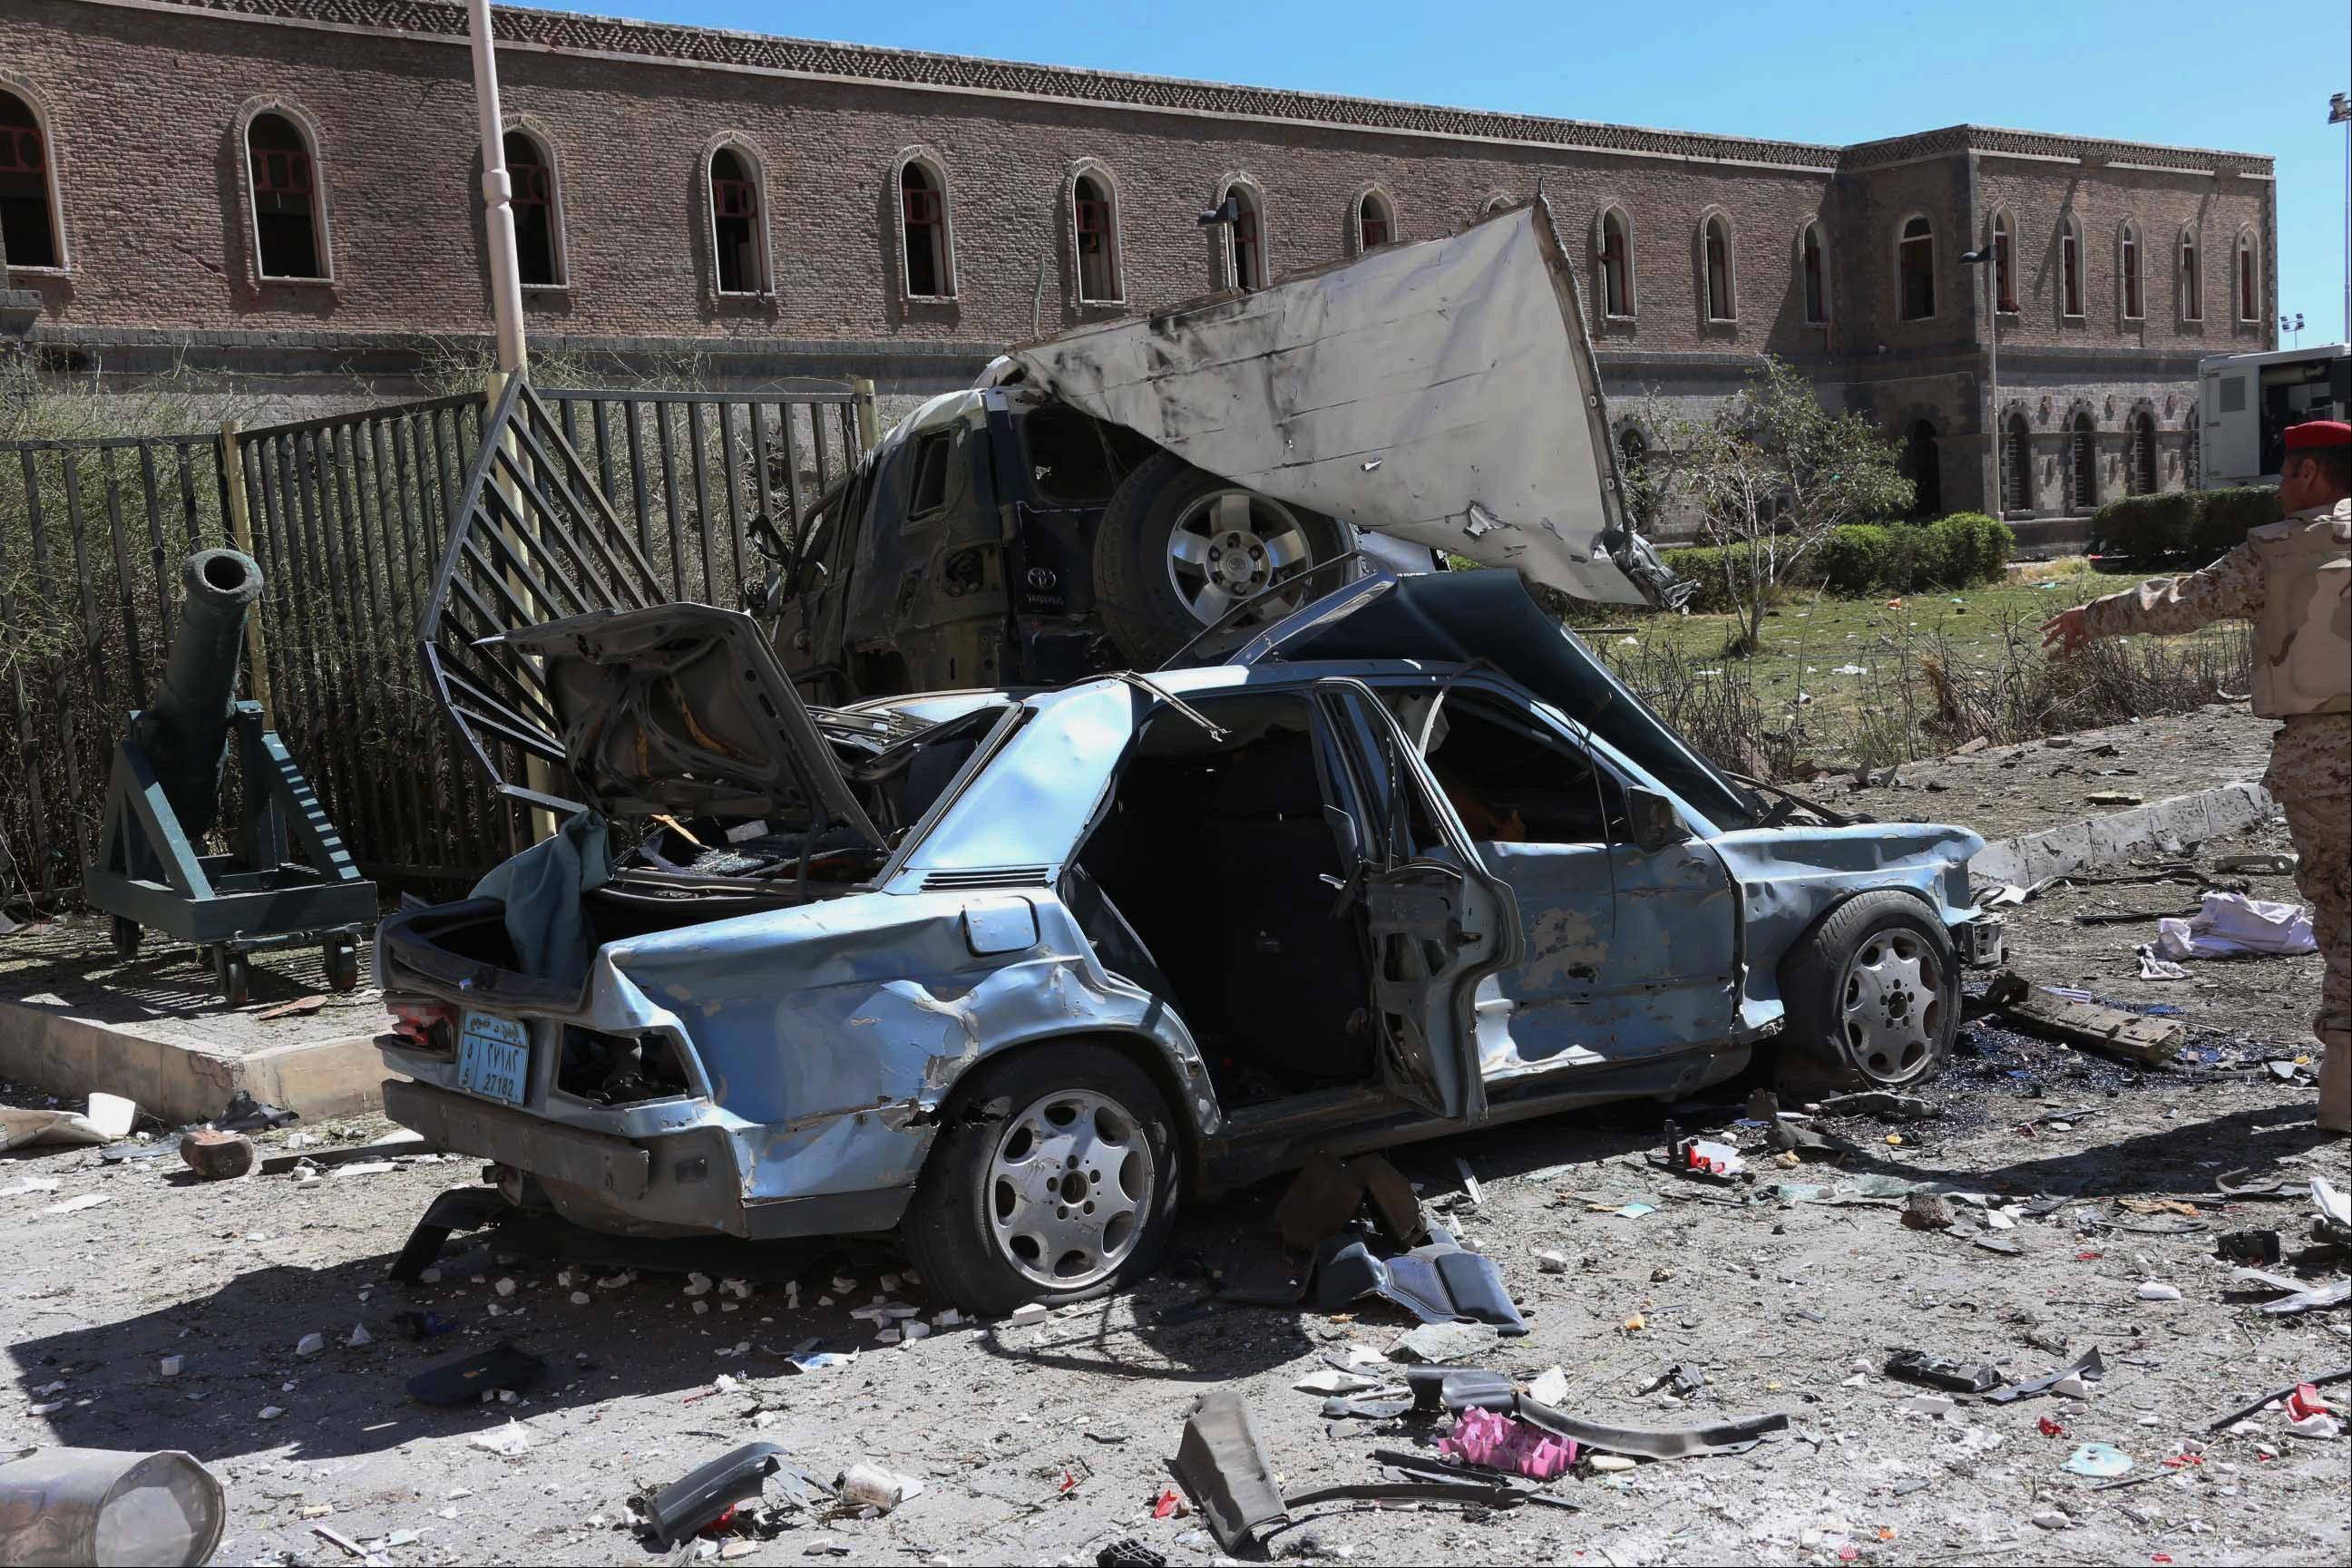 A suicide bomber detonated his explosives-laden car Thursday at Yemen�s Defense Ministry, killing more than a dozen soldiers and wounding at least 40 in an attack underlining the persistent threat to the stability and security of the impoverished Arab nation, military and hospital officials said.